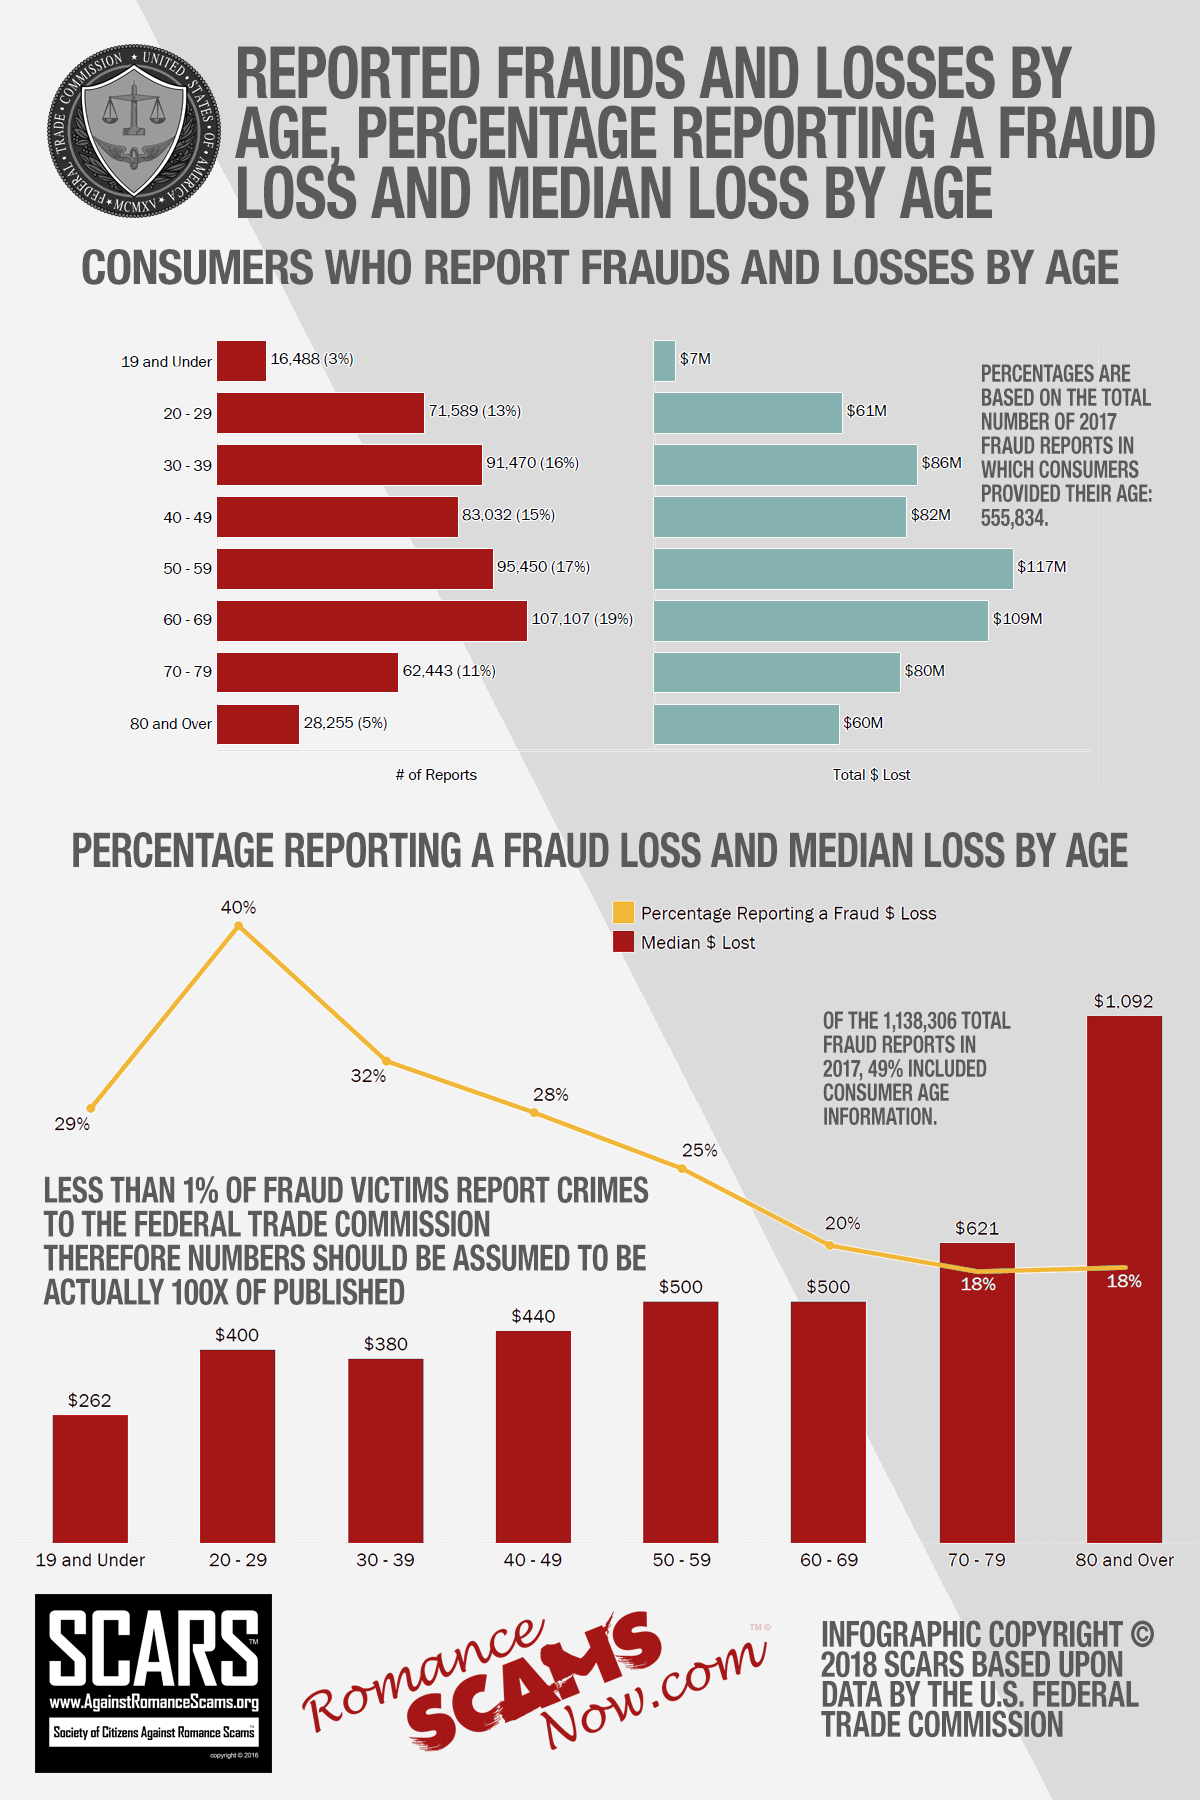 Reported Frauds and Losses by Age, Percentage Reporting a Fraud Loss and Median Loss by Age